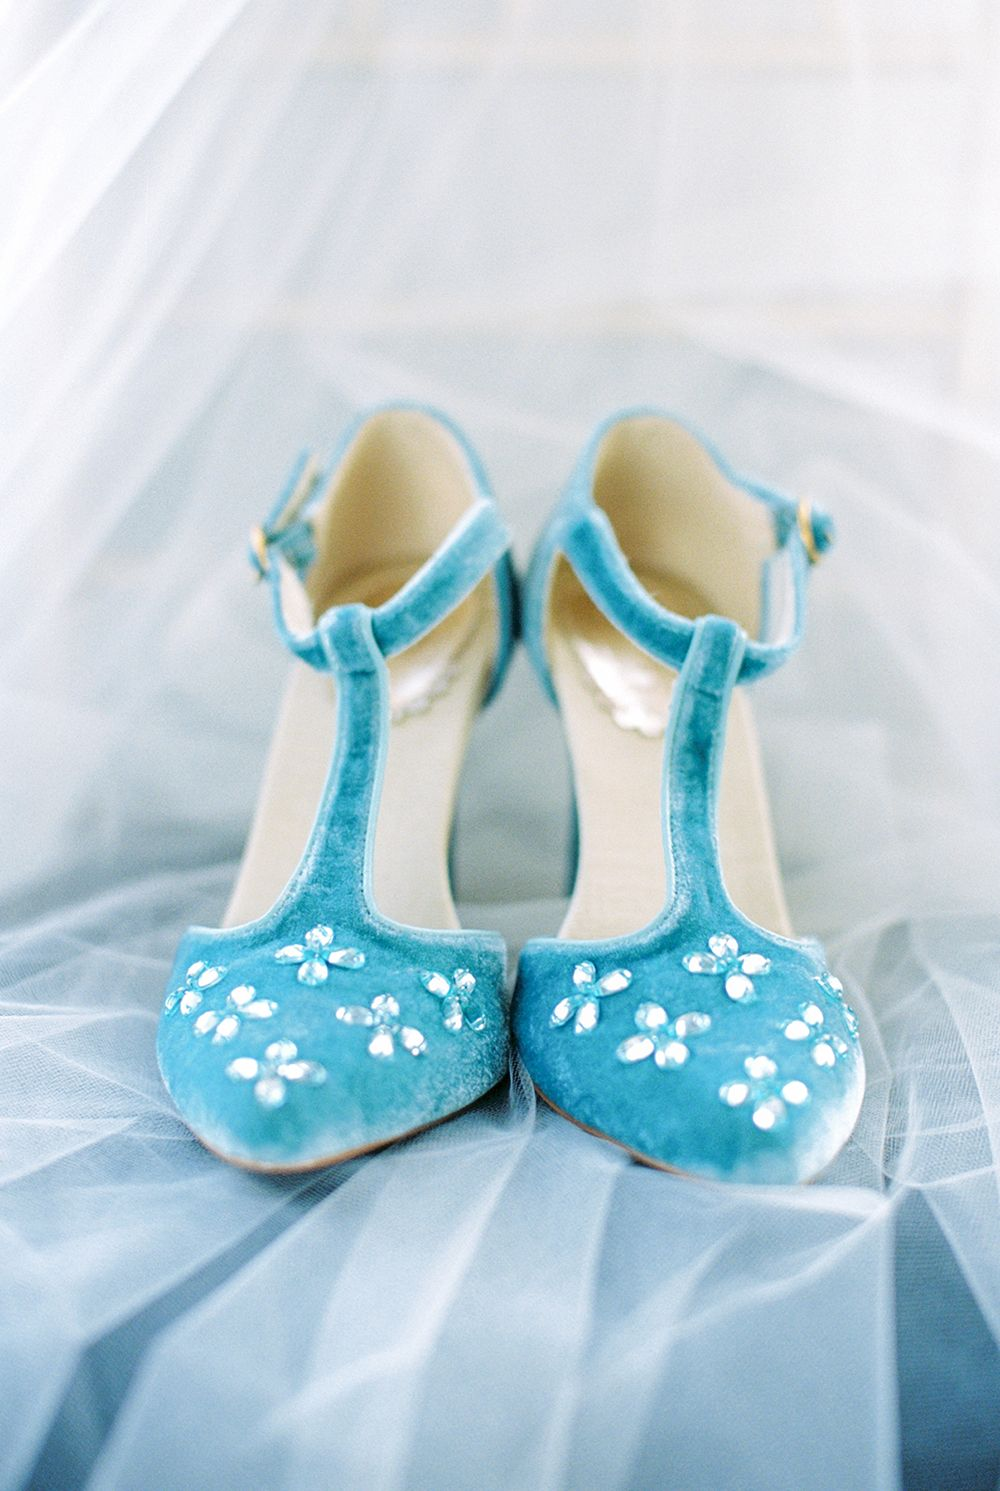 For The Love Of Copper Wedding Inspiration Blue ShoesCopper